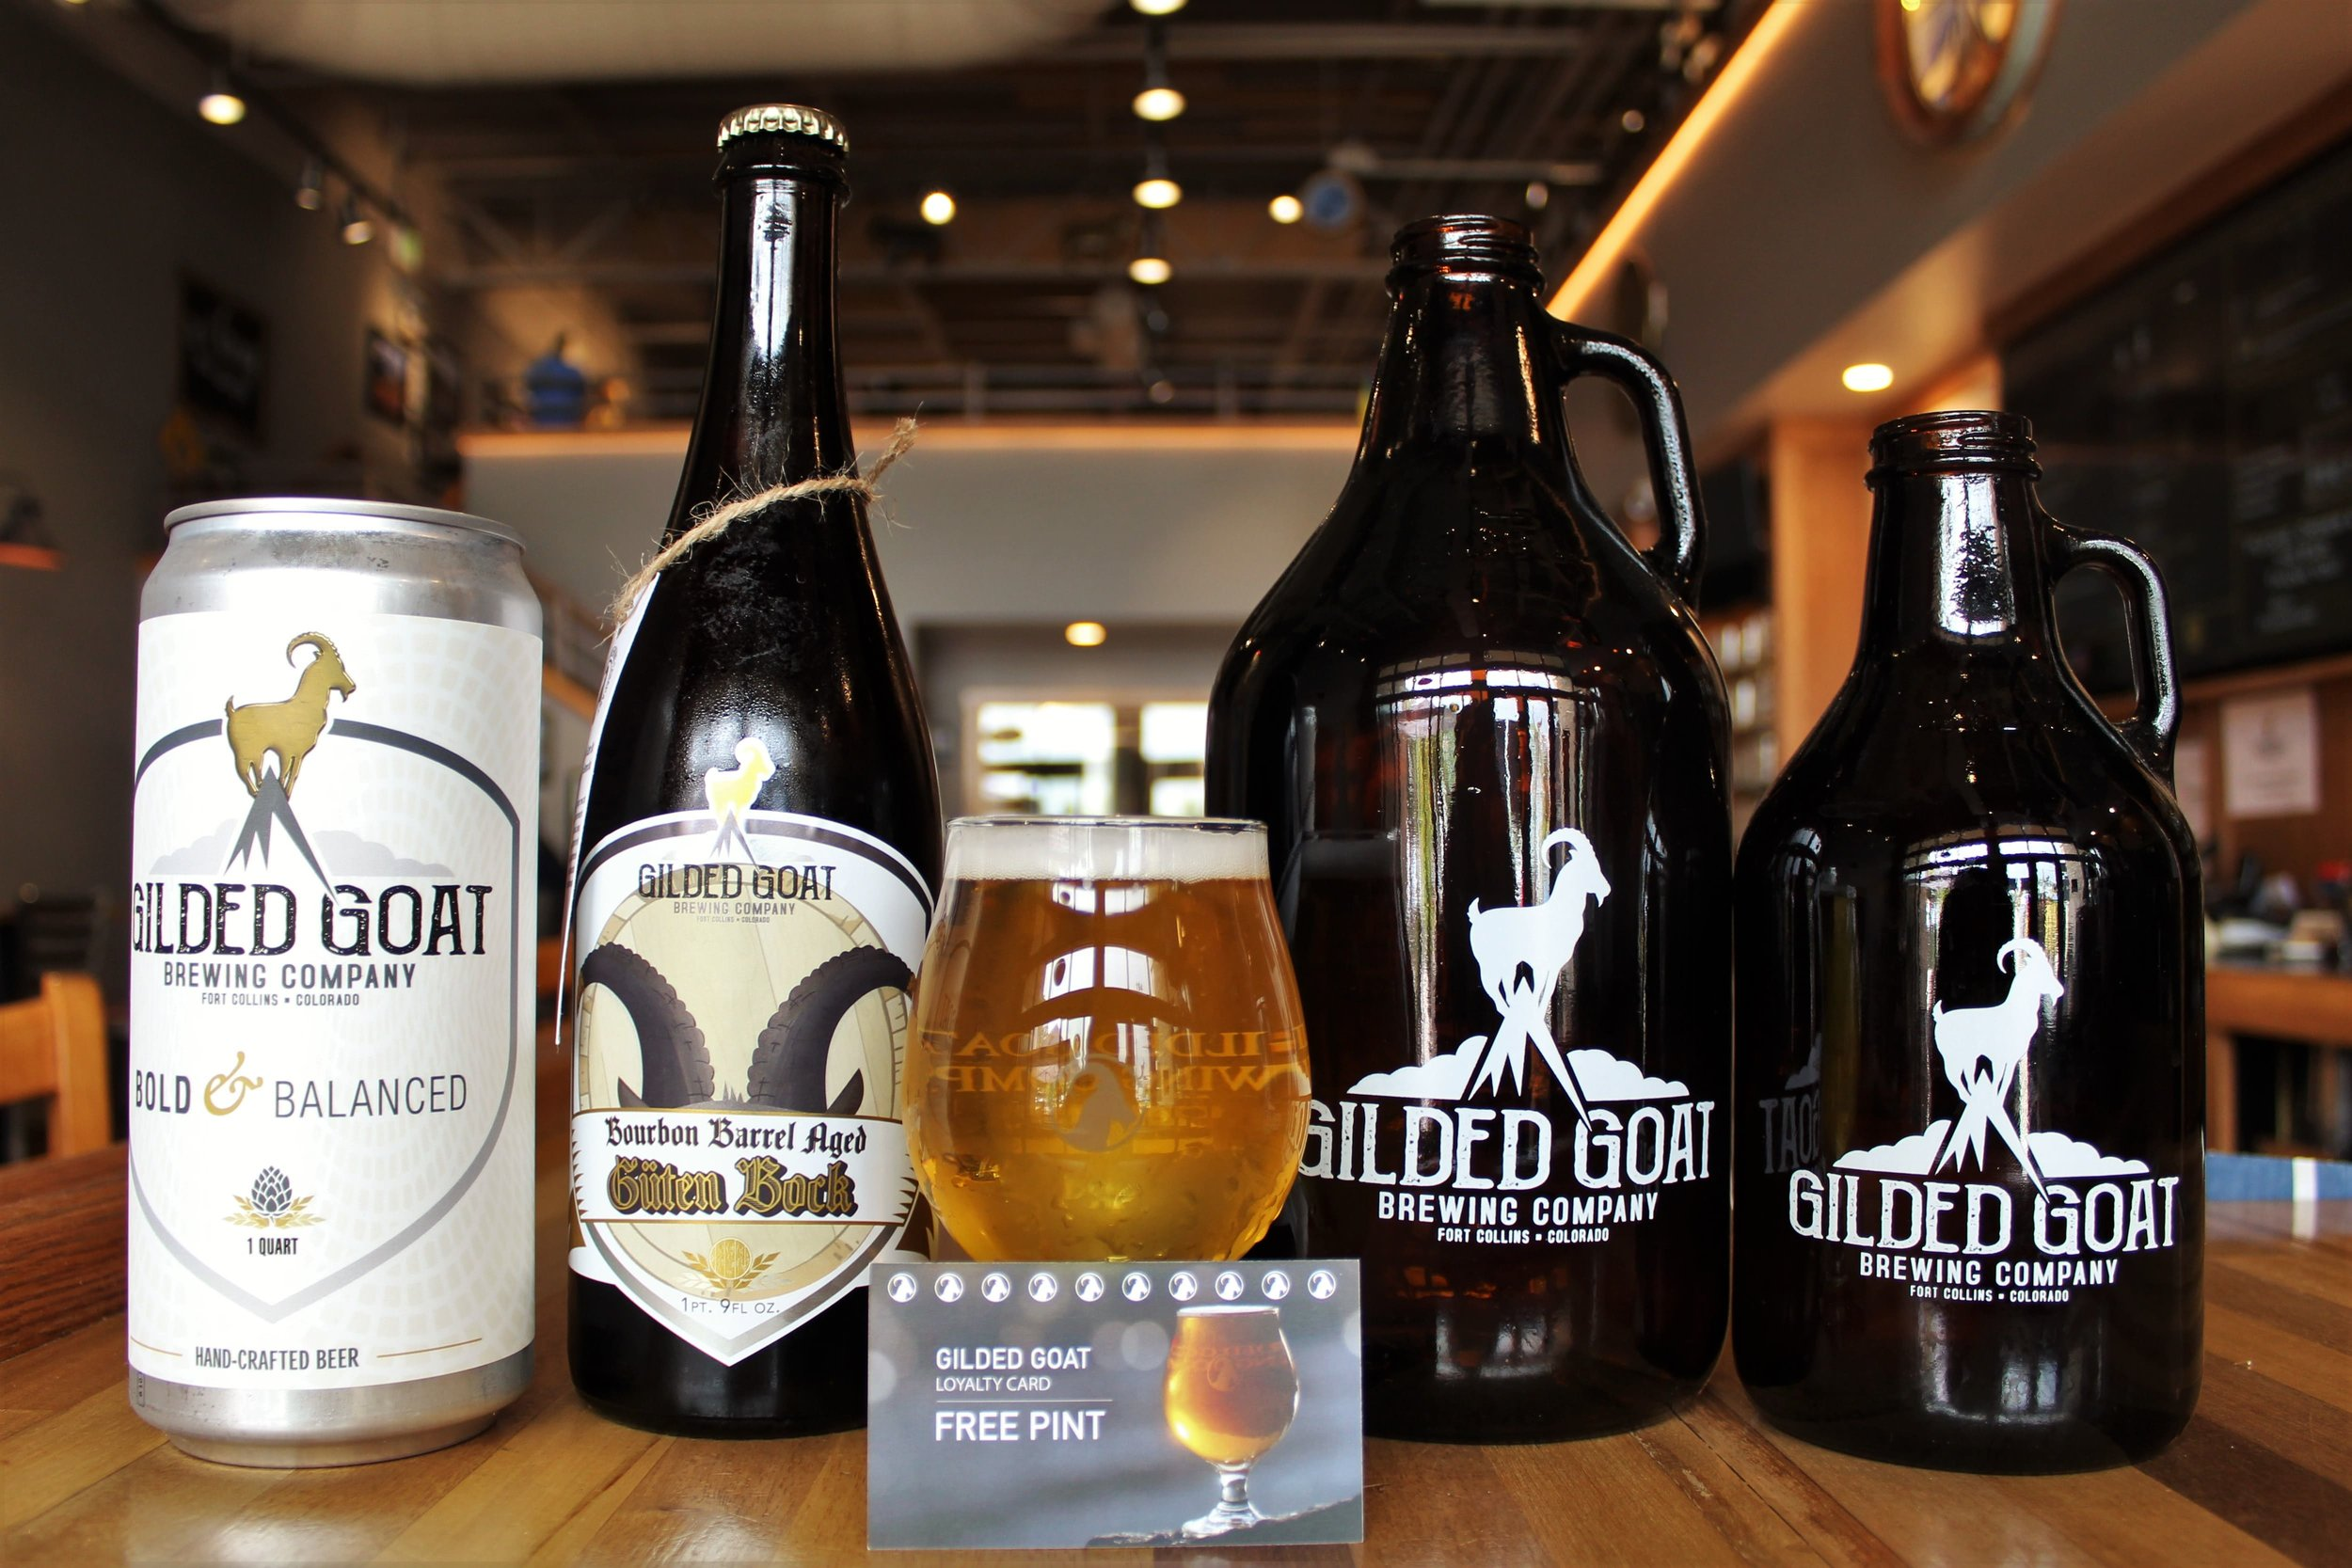 Gilded Goat loyalty punch car to win free craft beer. Crowler, bomber, growler, beer, and bottle. Fort Collins, Colorado at Gilded Goat Brewing Company.